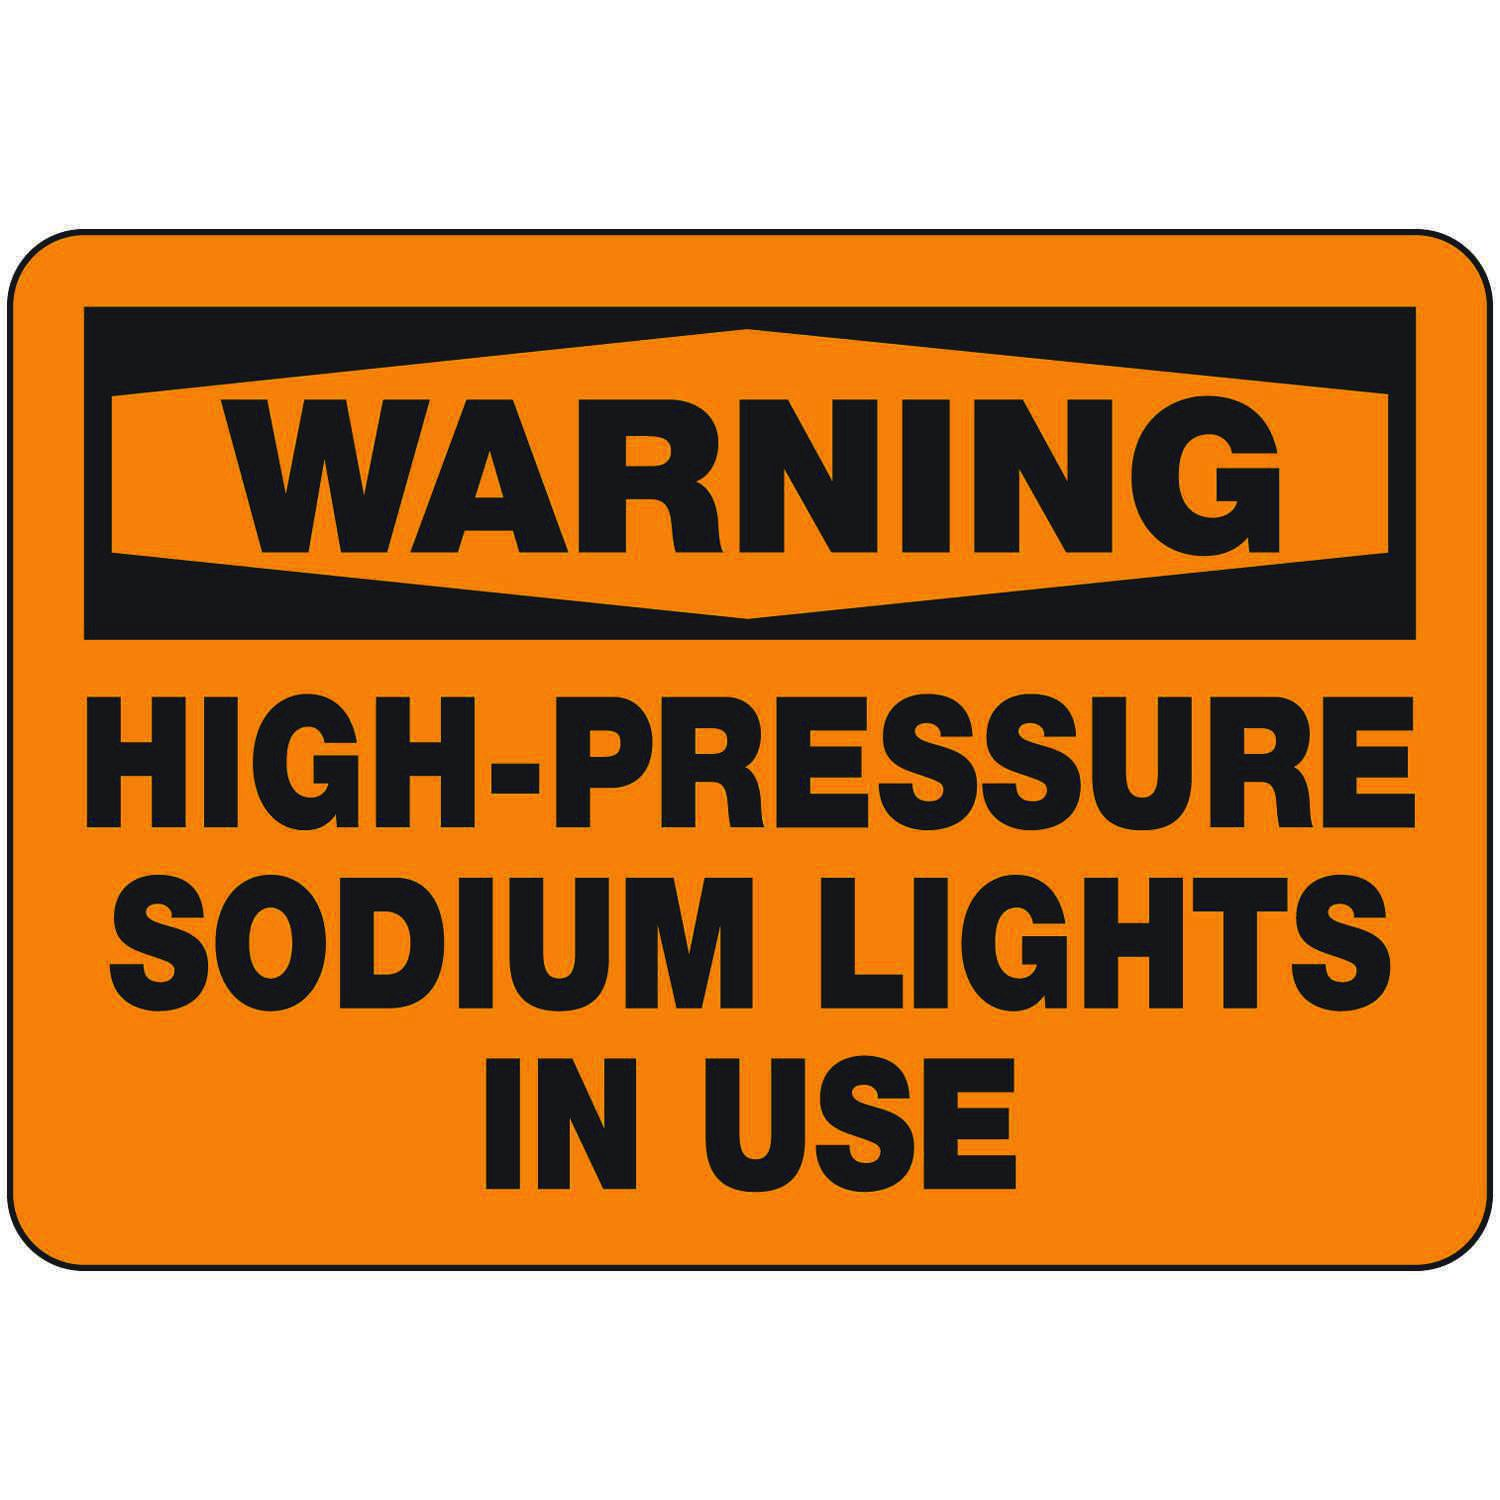 Warning - High Pressure Sodium Lights In Use Signs